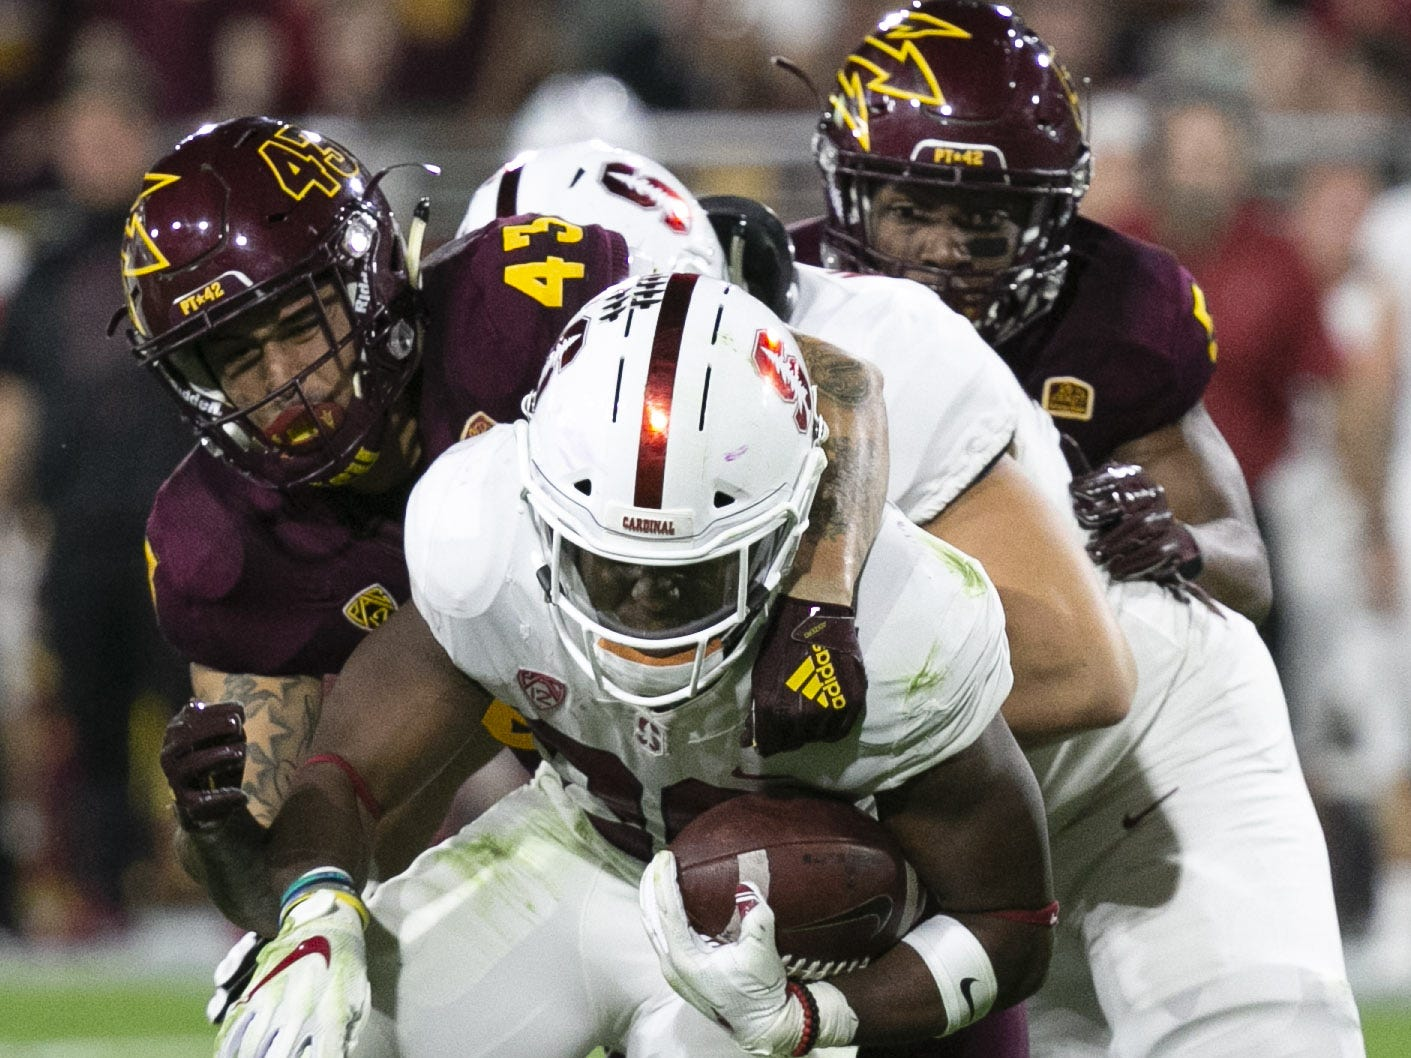 ASU defensive lineman Jalen Harvey tackles Stanford running back Bryce Love during the first quarter of the Pac-12 college football game at Sun Devil Stadium in Tempe on October 18, 2018.